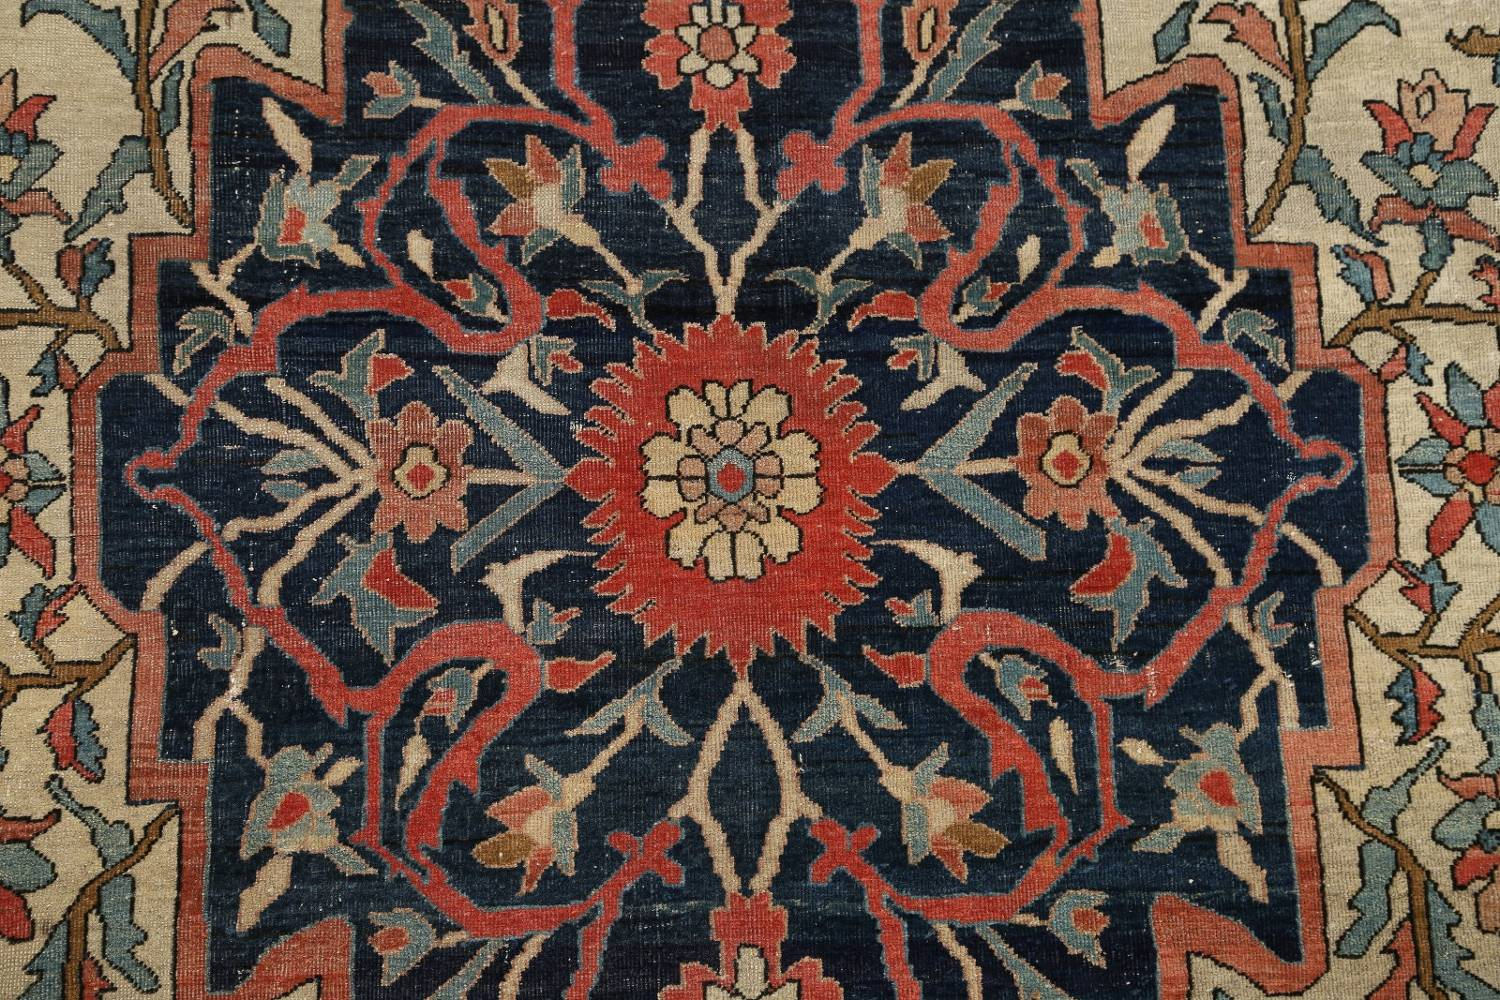 Pre-1900 Antique Floral Sarouk Farahan Persian Hand-Knotted 4'x7' Wool Area Rug image 9